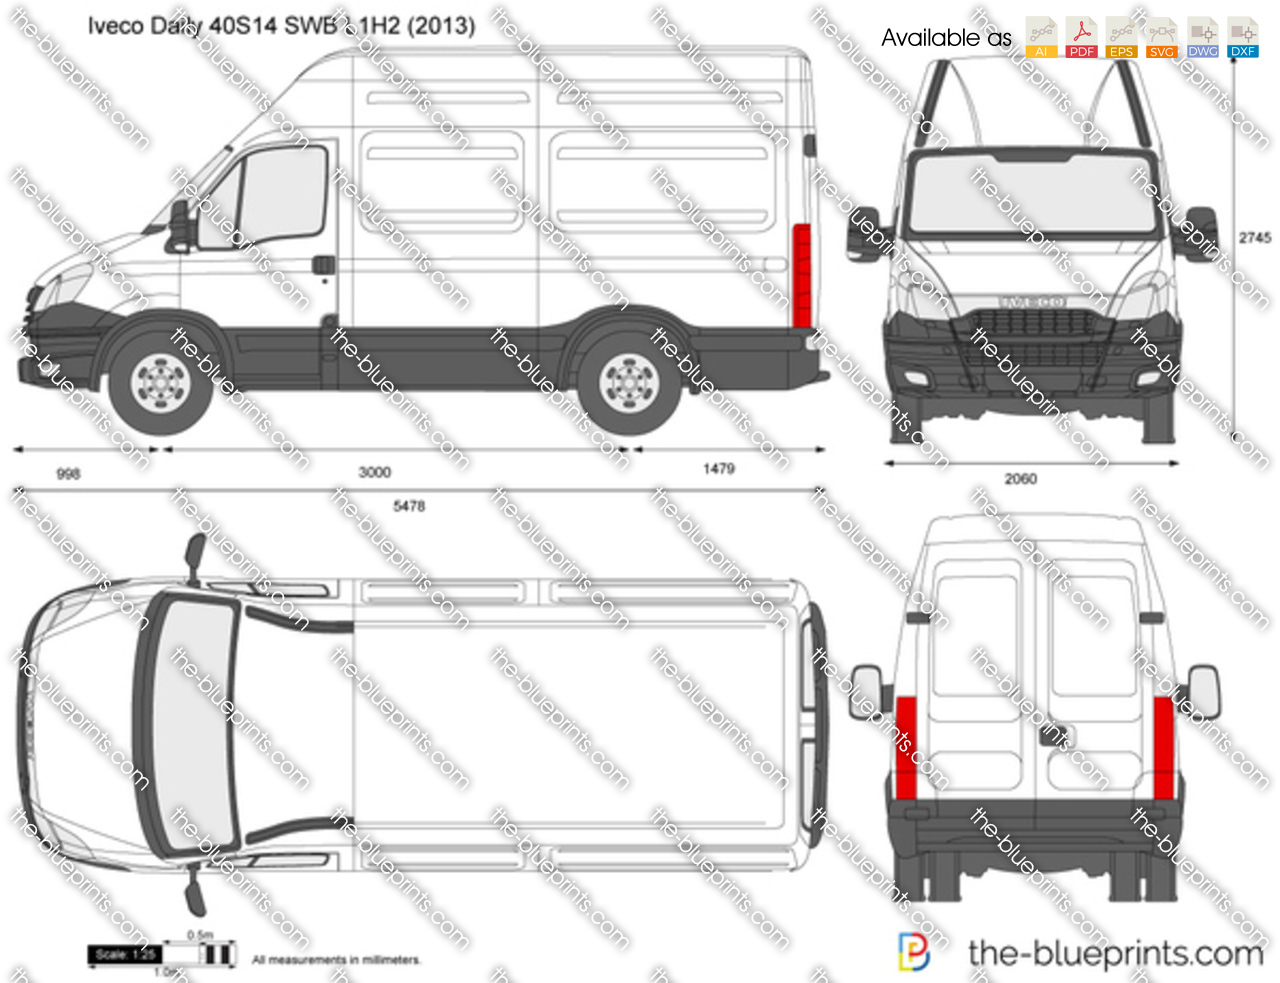 Super Iveco Daily 40S14 SWB L1H2 vector drawing IQ74